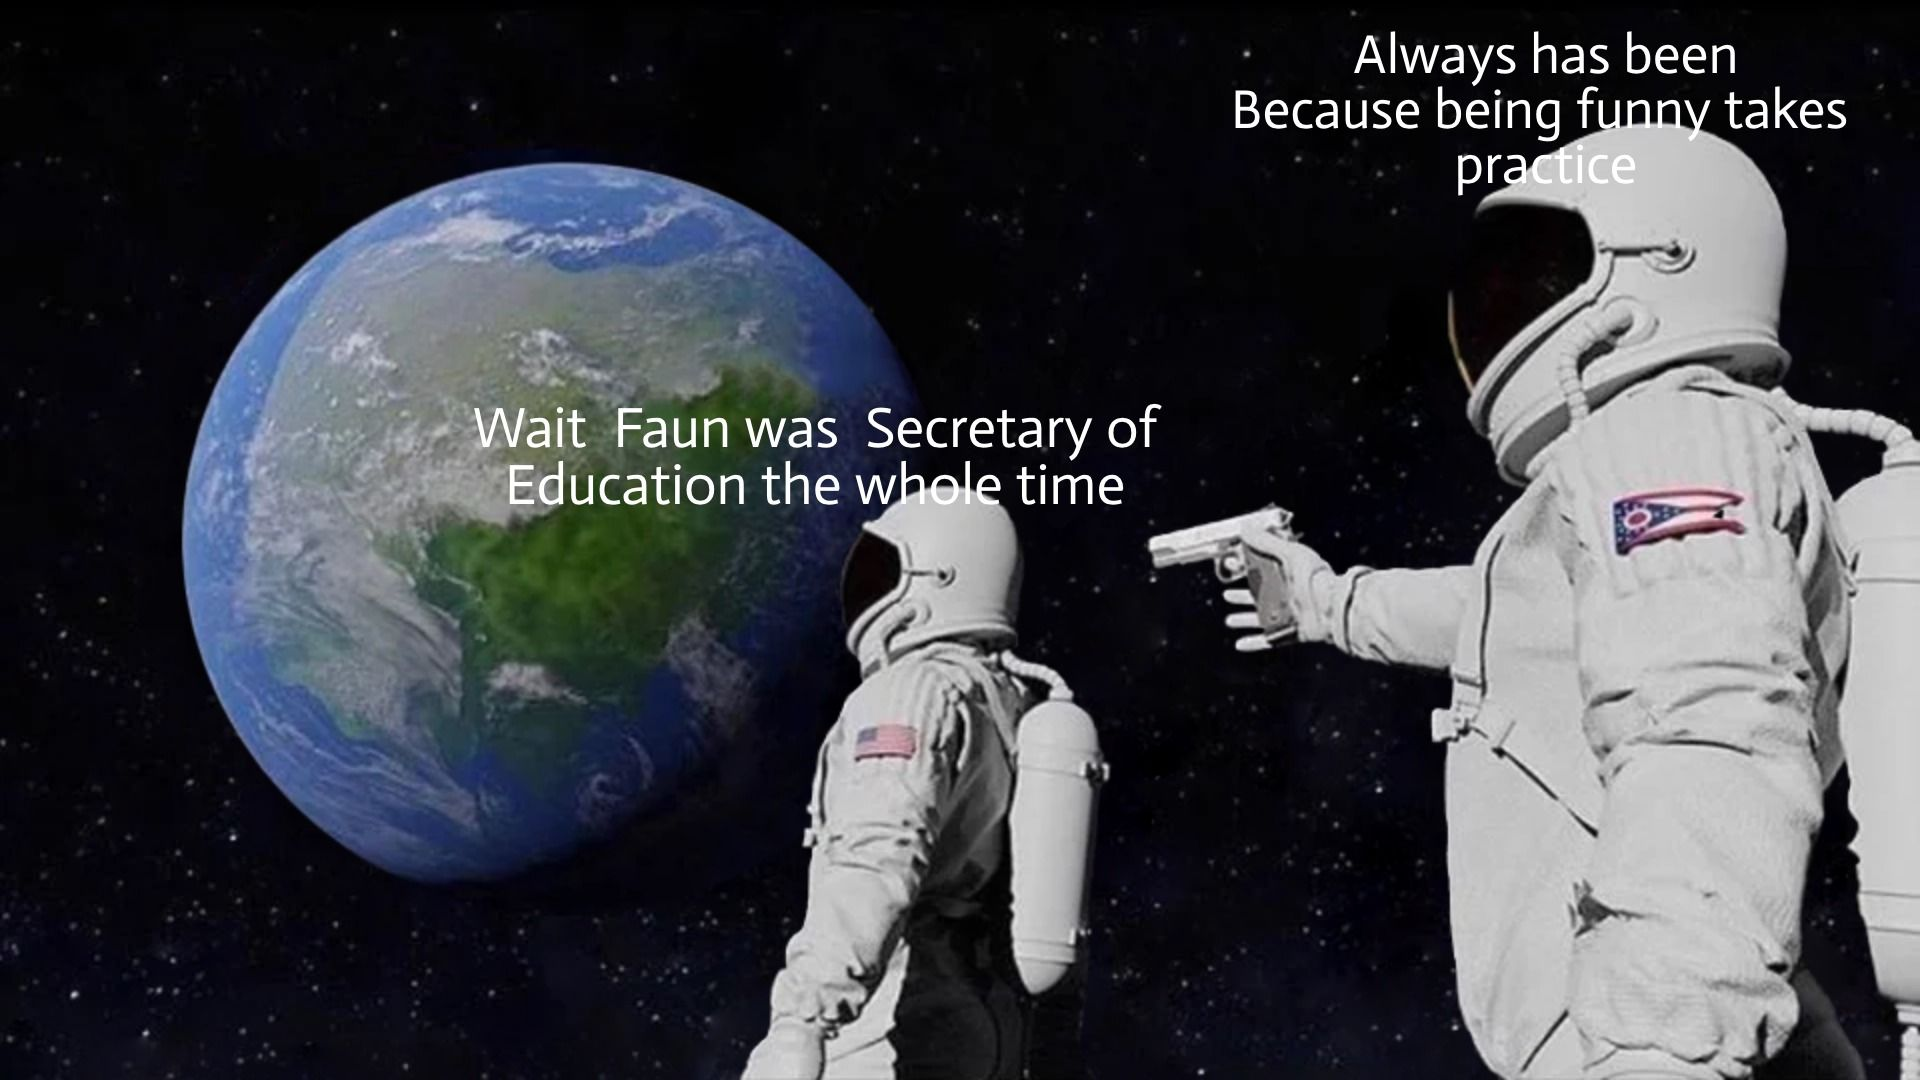 Vote Faun for Minister of Education #HLELECTION #2times